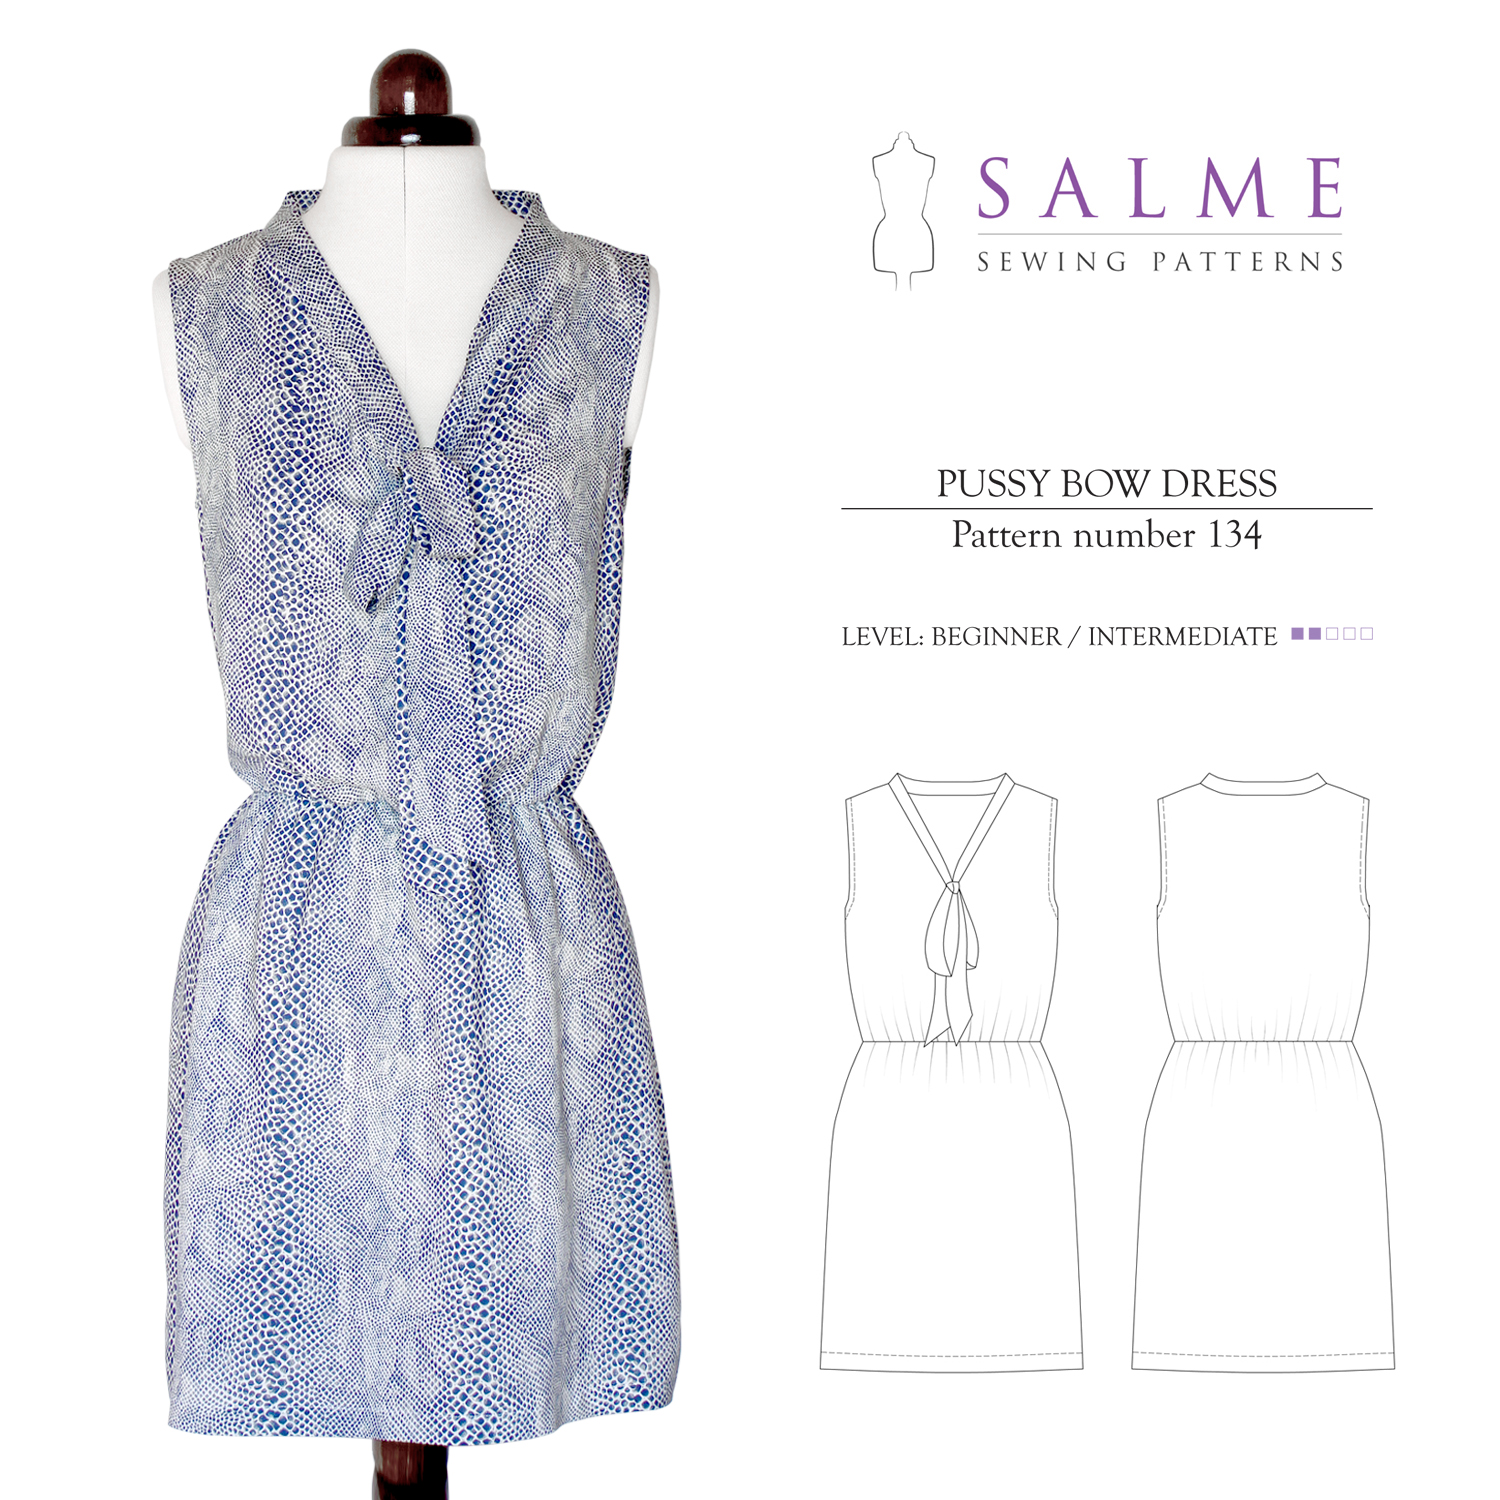 Salme Sewing Patterns Pussy Bow Dress Downloadable Pattern 134